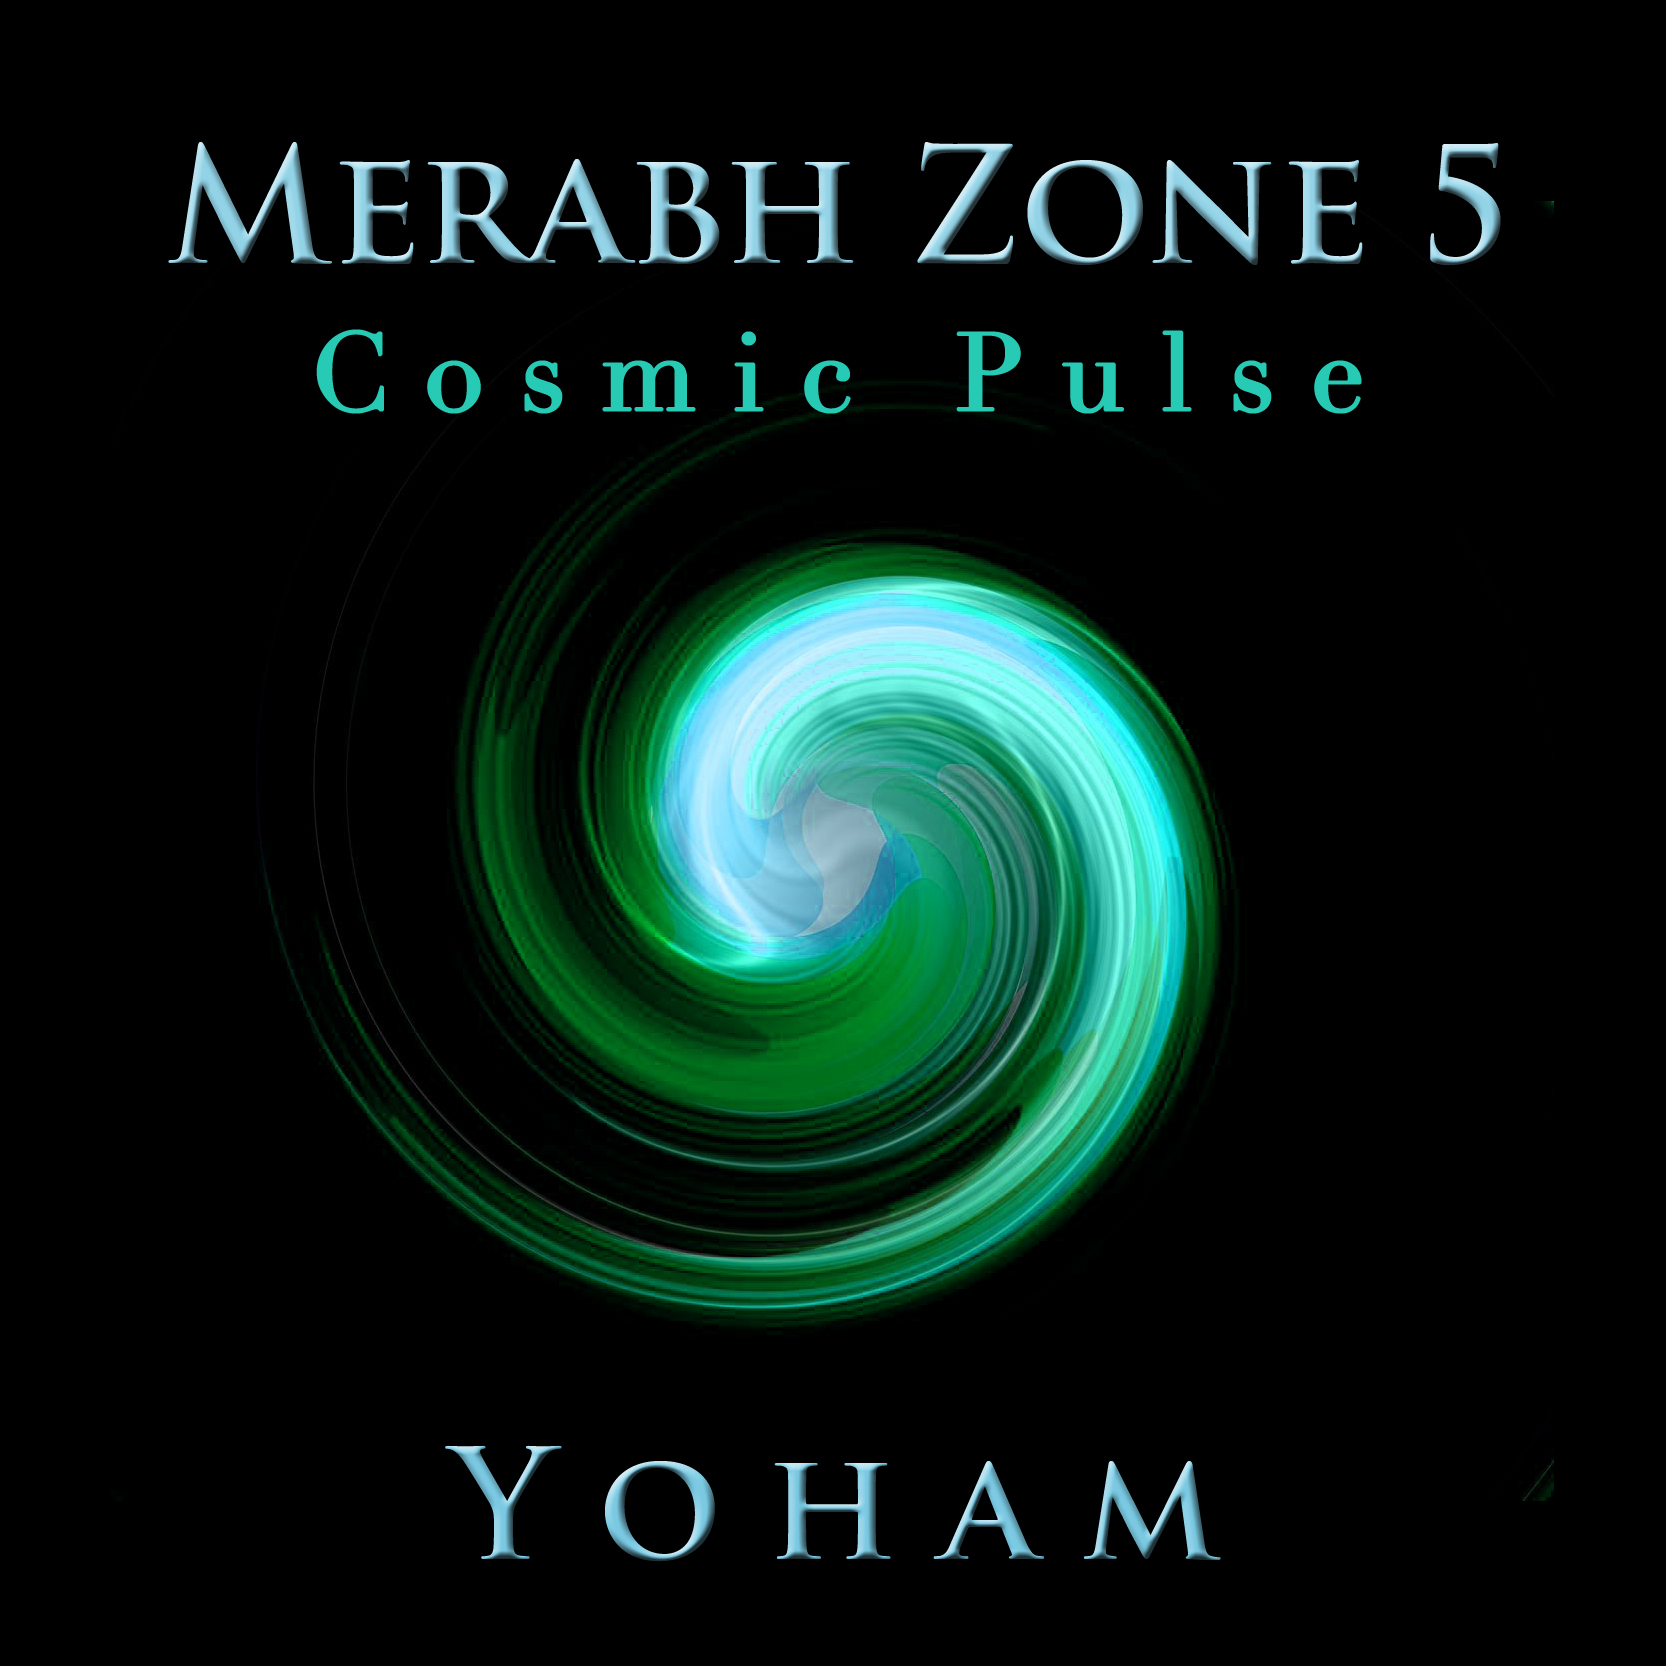 Merabh Zone 5 - Cosmic Pulse